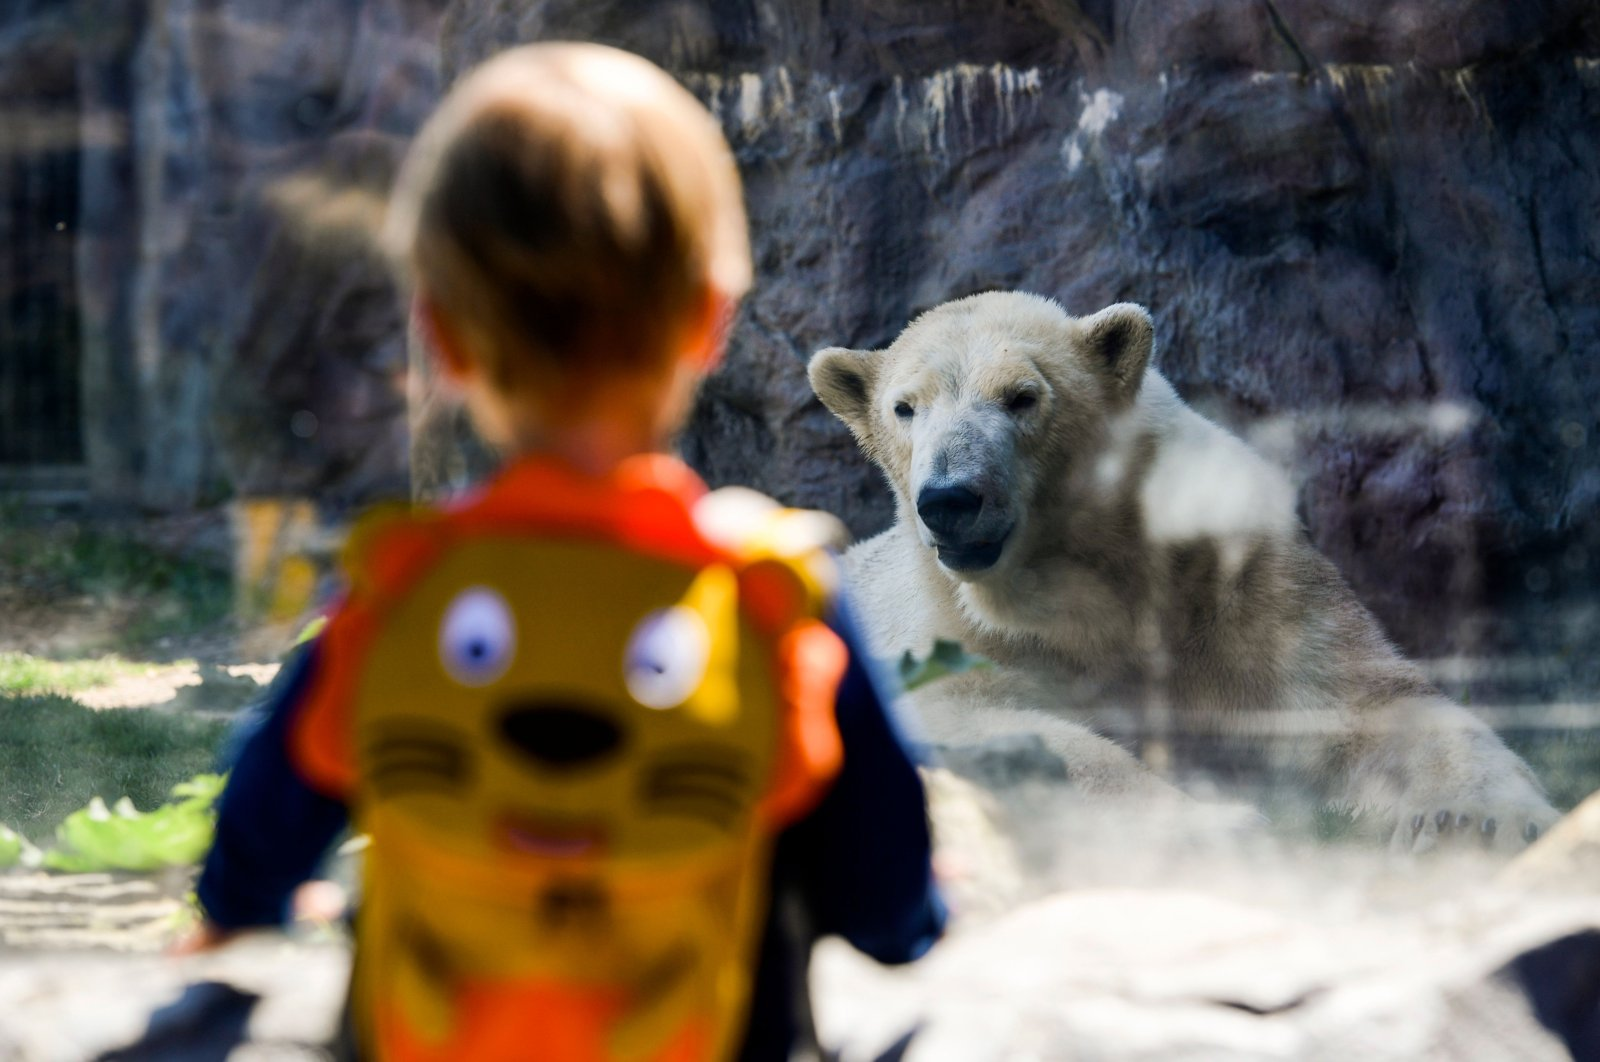 A child stands in front of a polar bear at the ZOOM Erlebniswelt Gelsenkirchen zoo, Gelsenkirchen, Germany, May 7, 2020. (AFP Photo)